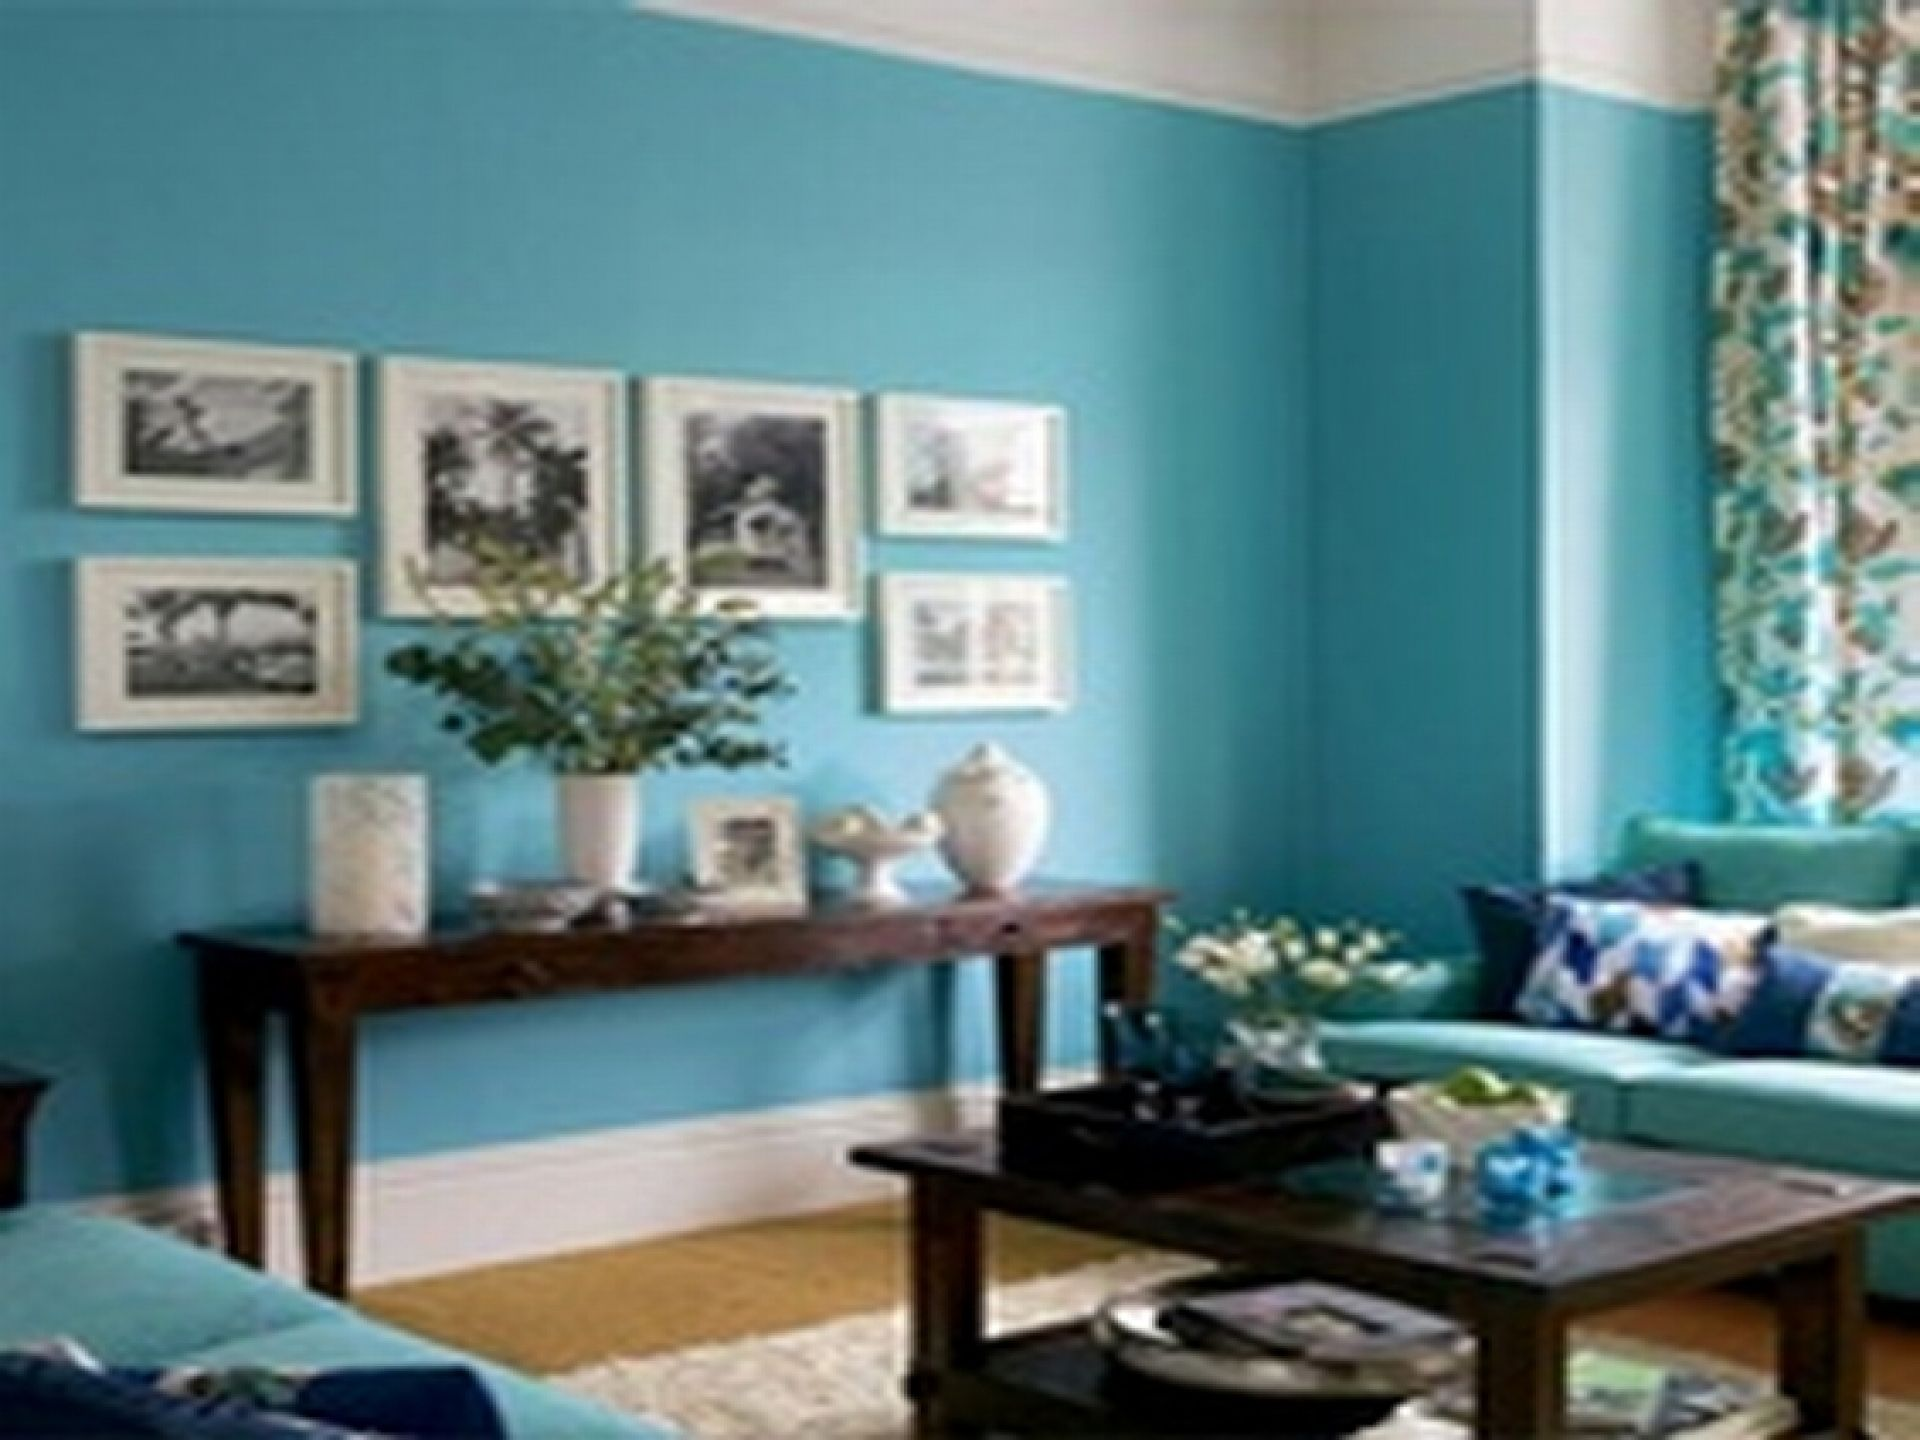 interior decor brown turquoise blue paint colors decorating ideas